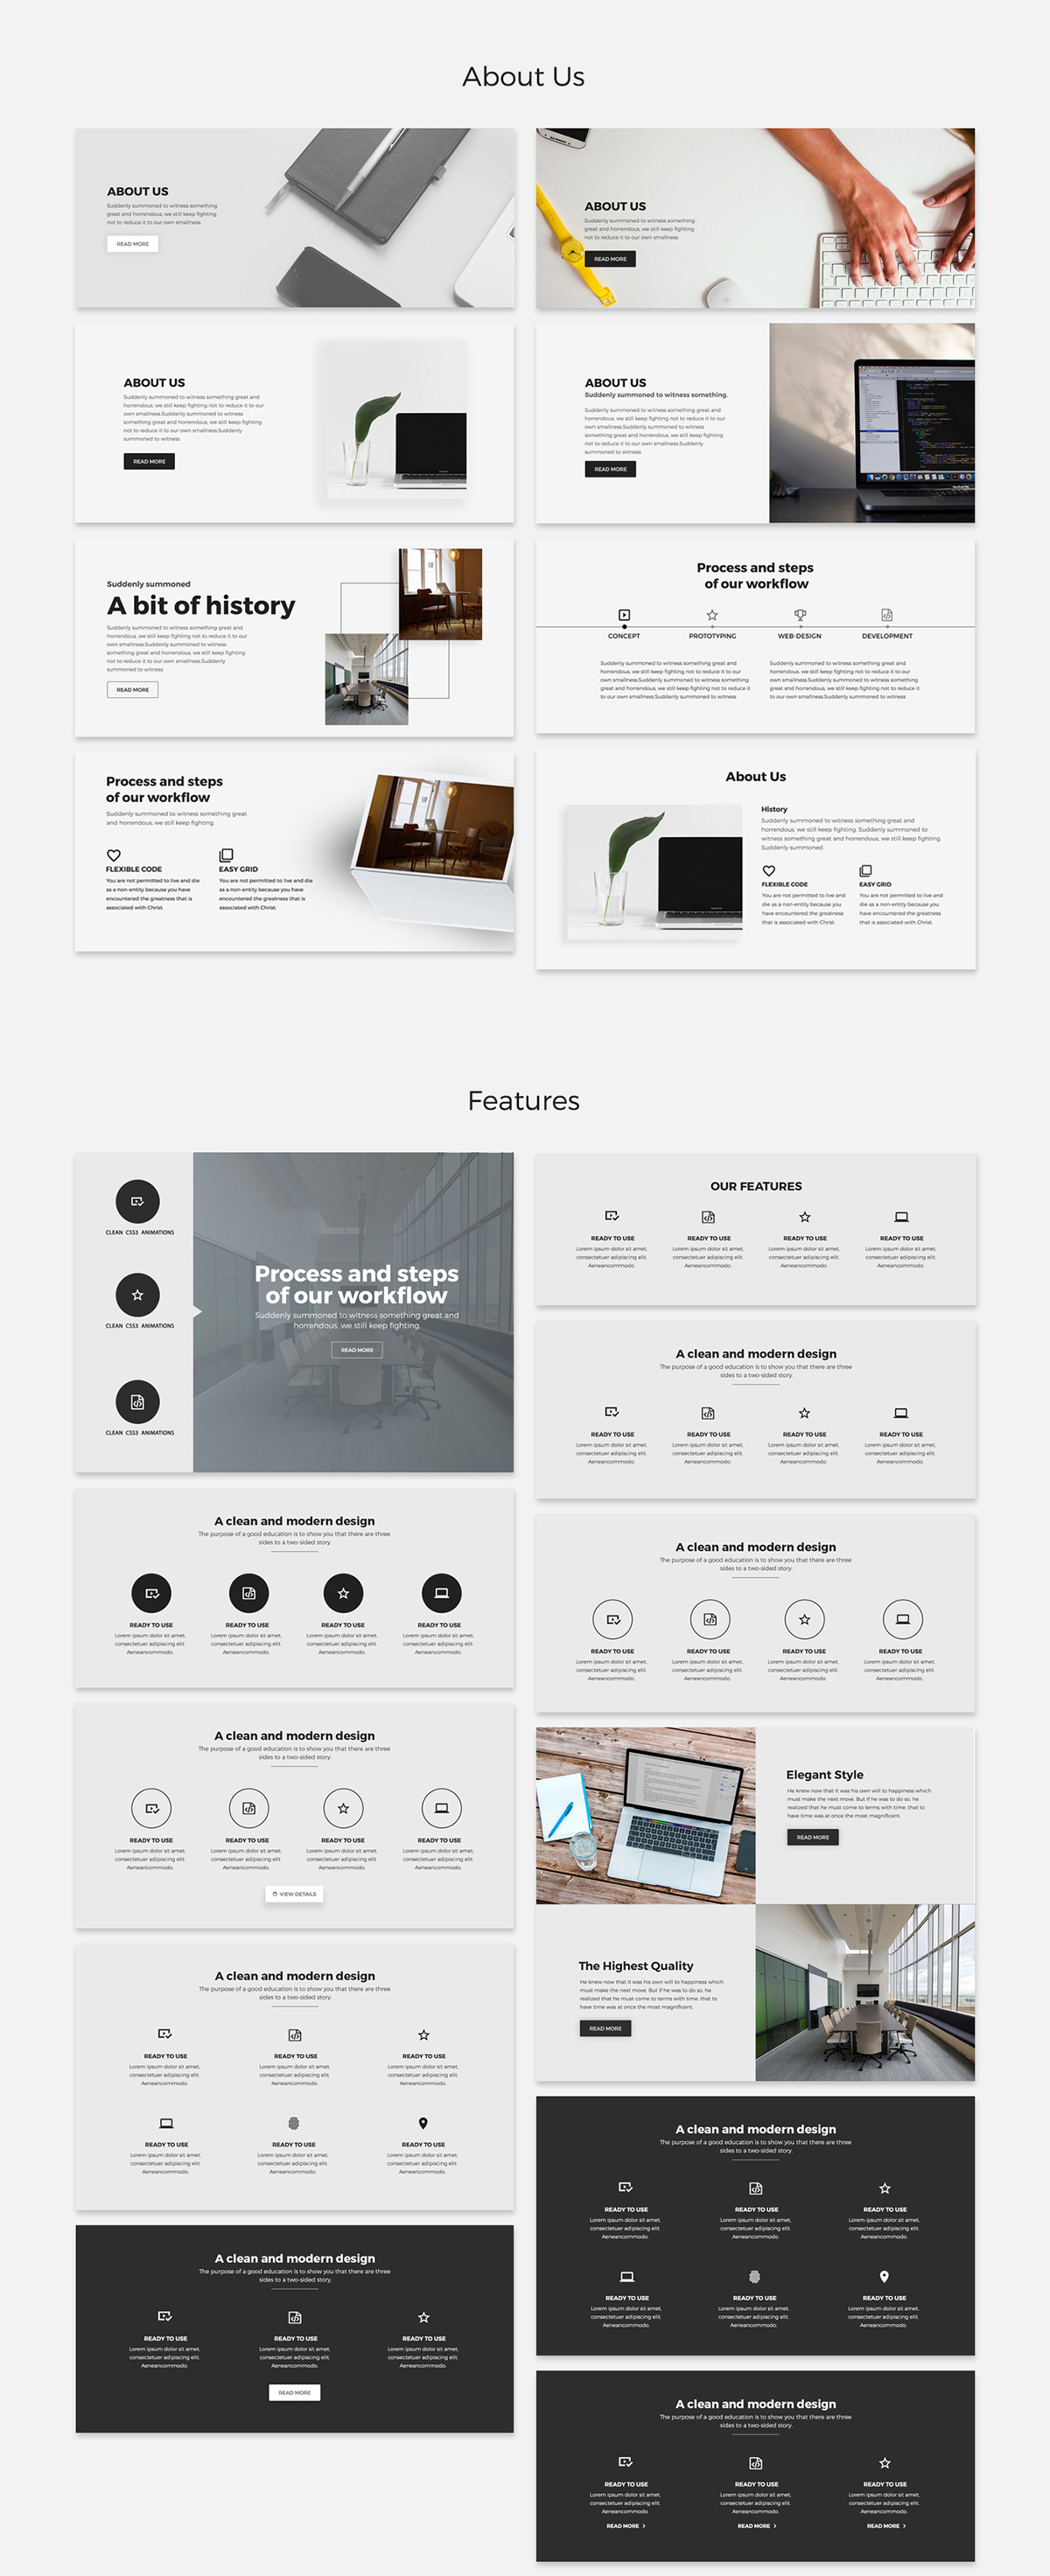 Free Landing Page UI Kit for PSD - About us section